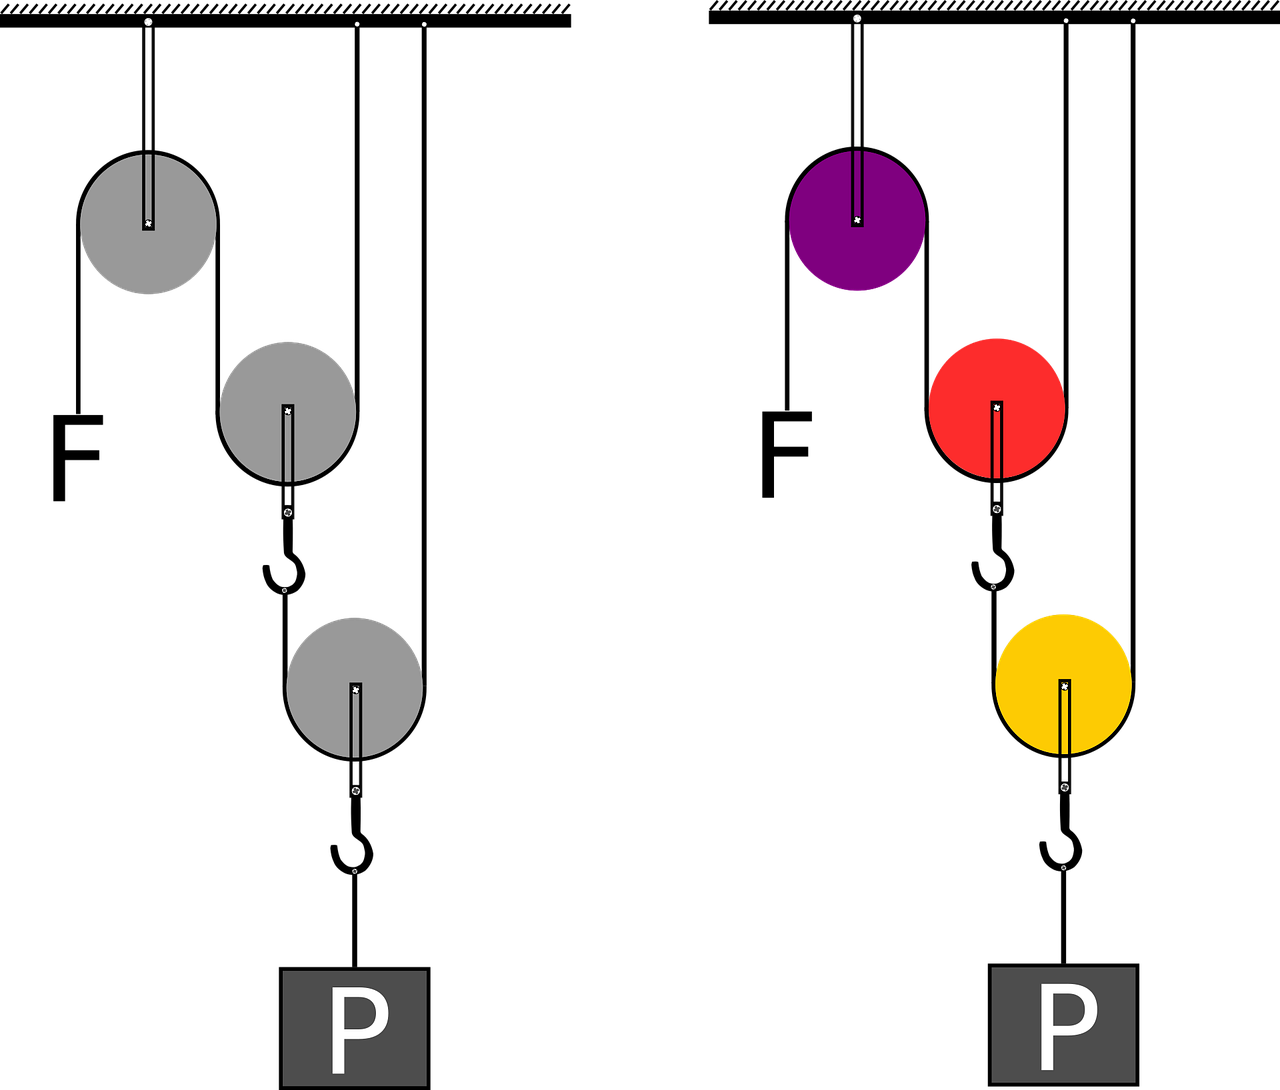 This is a color illustration of the force distribution of a double pulley system.